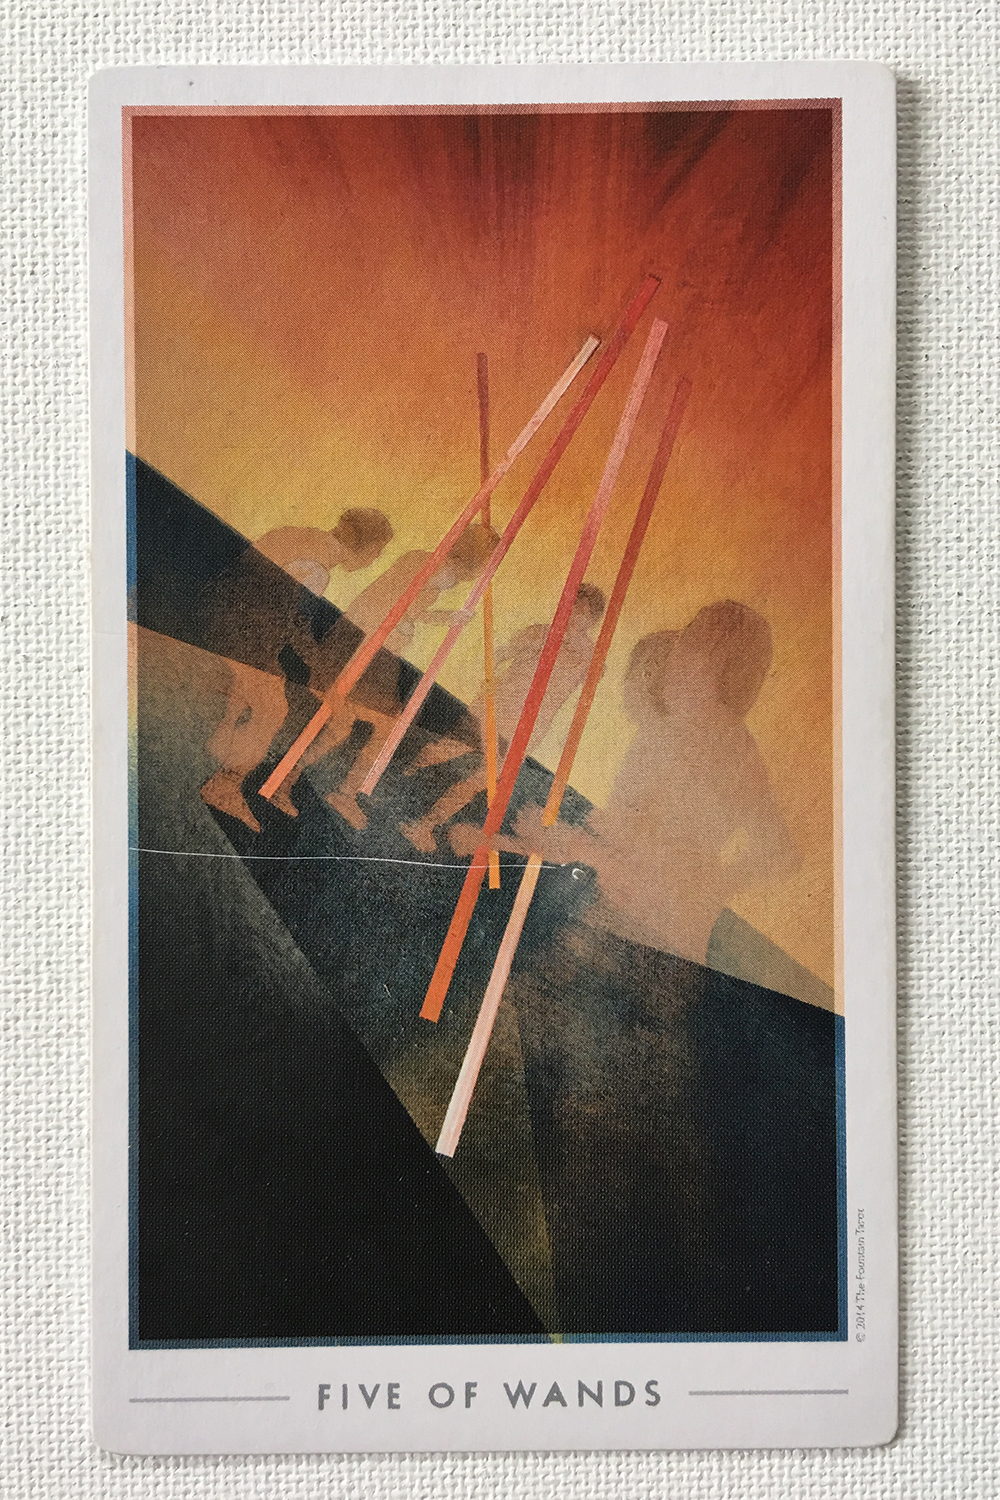 Five of Wands.